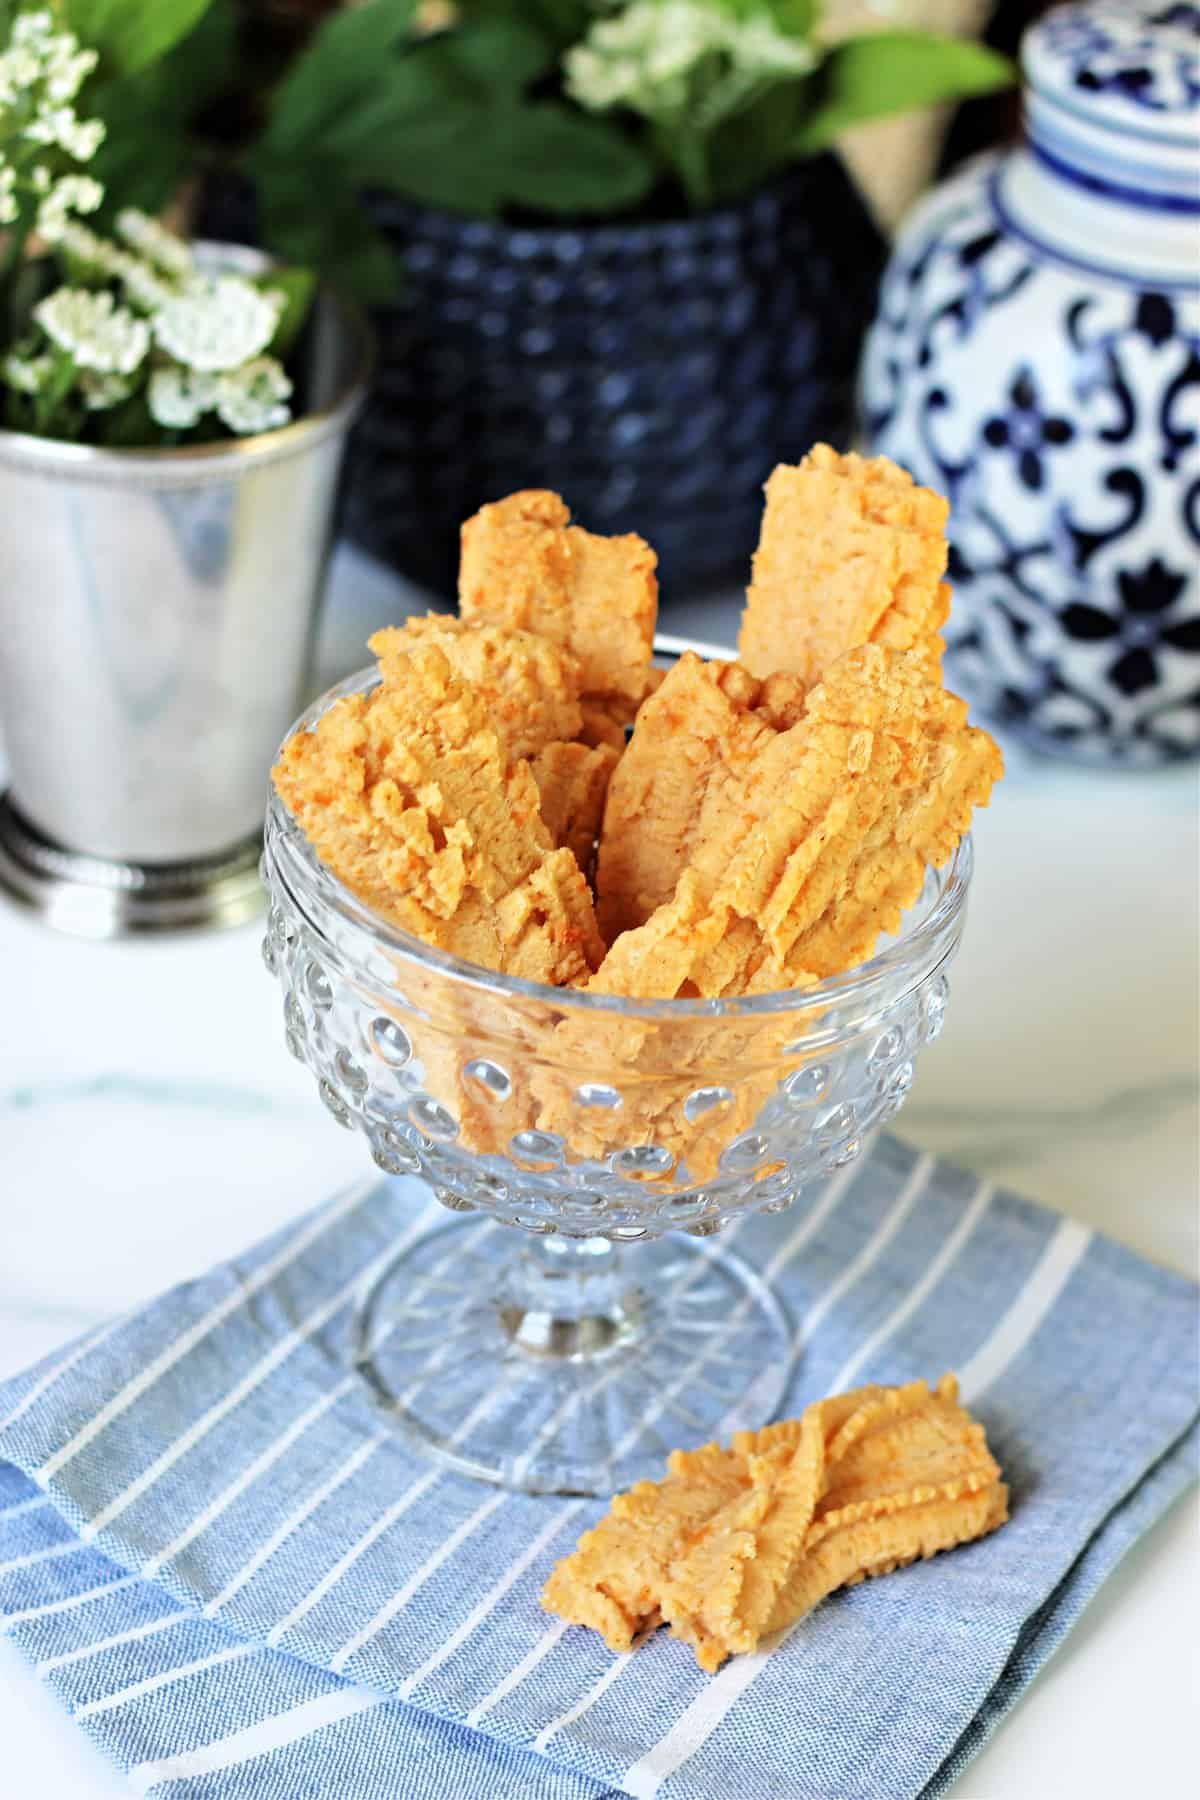 Southern Cheese Straws in a clear glass dish with decorative elements surrounding.